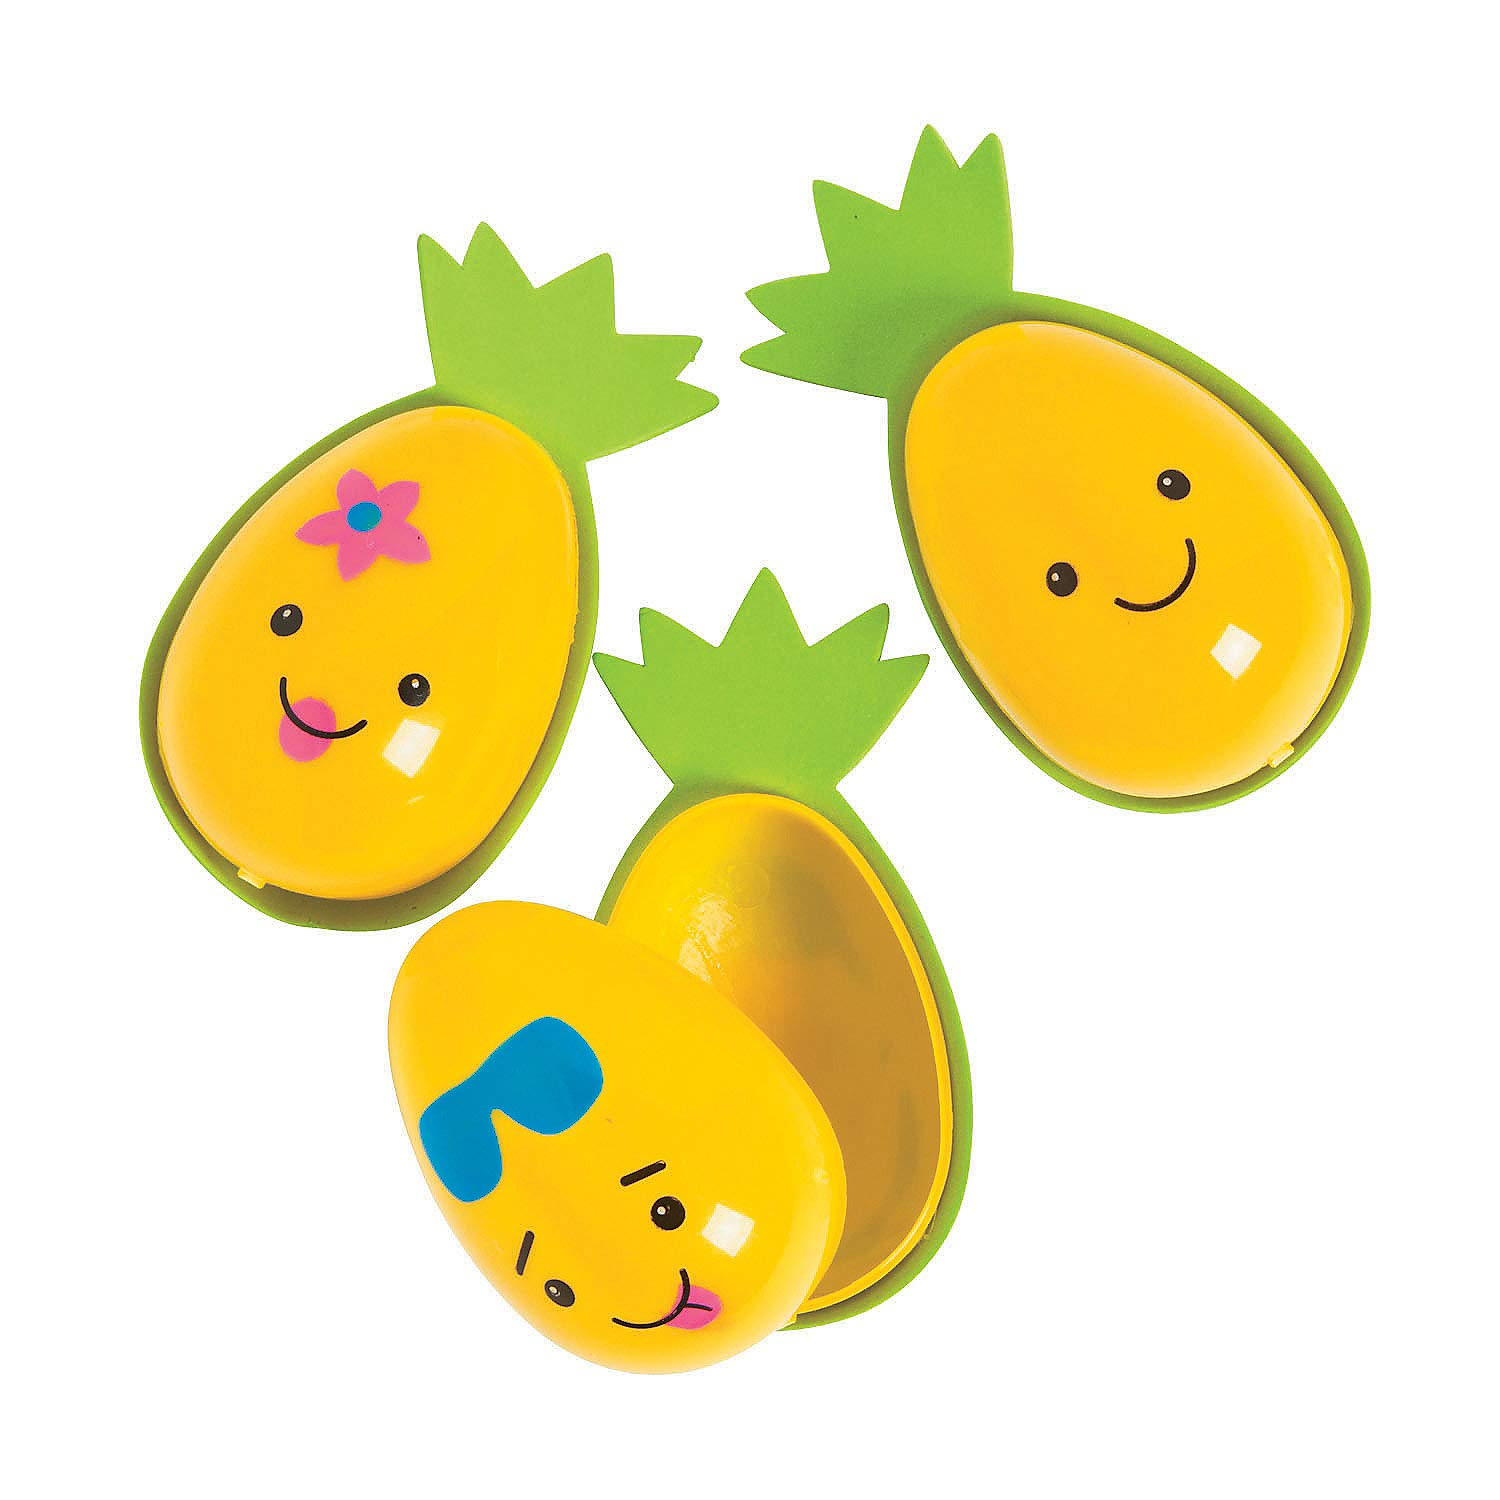 Pineapple Character Easter Eggs for Easter Containers /& Boxes 12 Pieces Easter Fun Express Party Supplies Plastic Containers